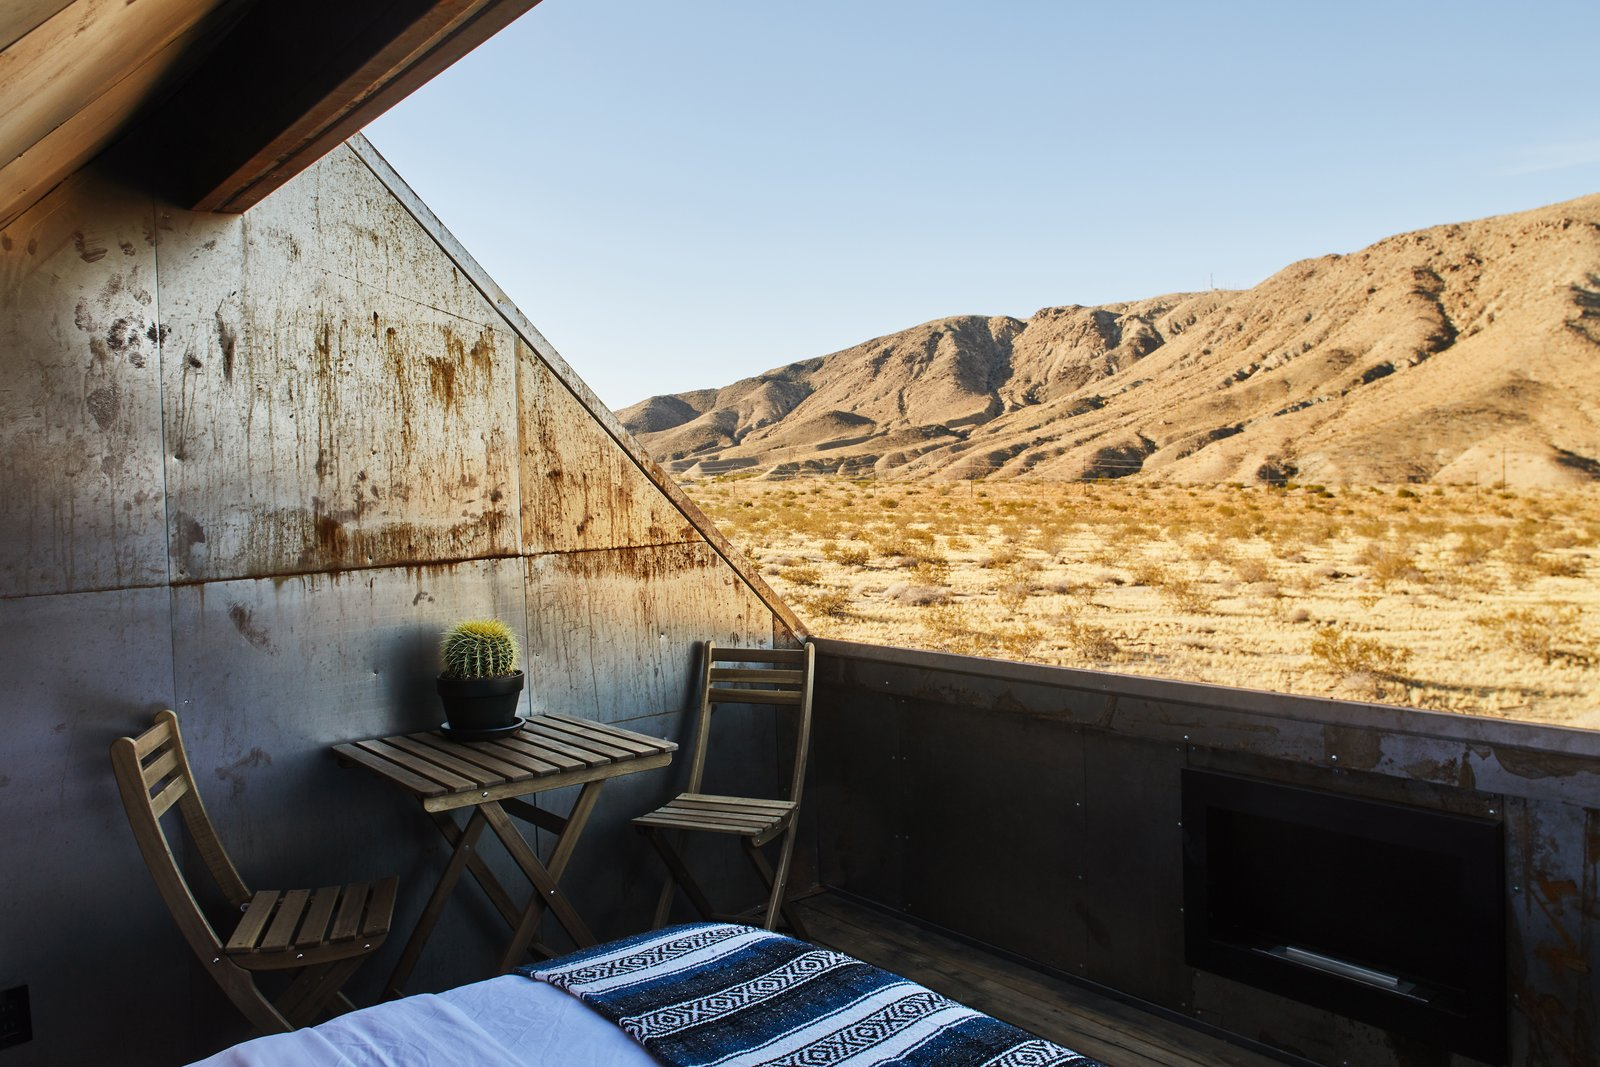 Outdoor, Desert, and Wood Patio, Porch, Deck Alqadi topped the second cabin, which houses a water tank and the site's mechanicals, with a north-facing deck for sunbathing and sleeping under the stars. In addition to a heated bed, it includes a bio-ethanol fireplace and a projector for watching movies on the back wall. A custom cover fits over the opening when rain is expected.  Photo 5 of 13 in These Tiny, Off-the-Grid Cabins Near Joshua Tree Look Totally Apocalypse-Proof